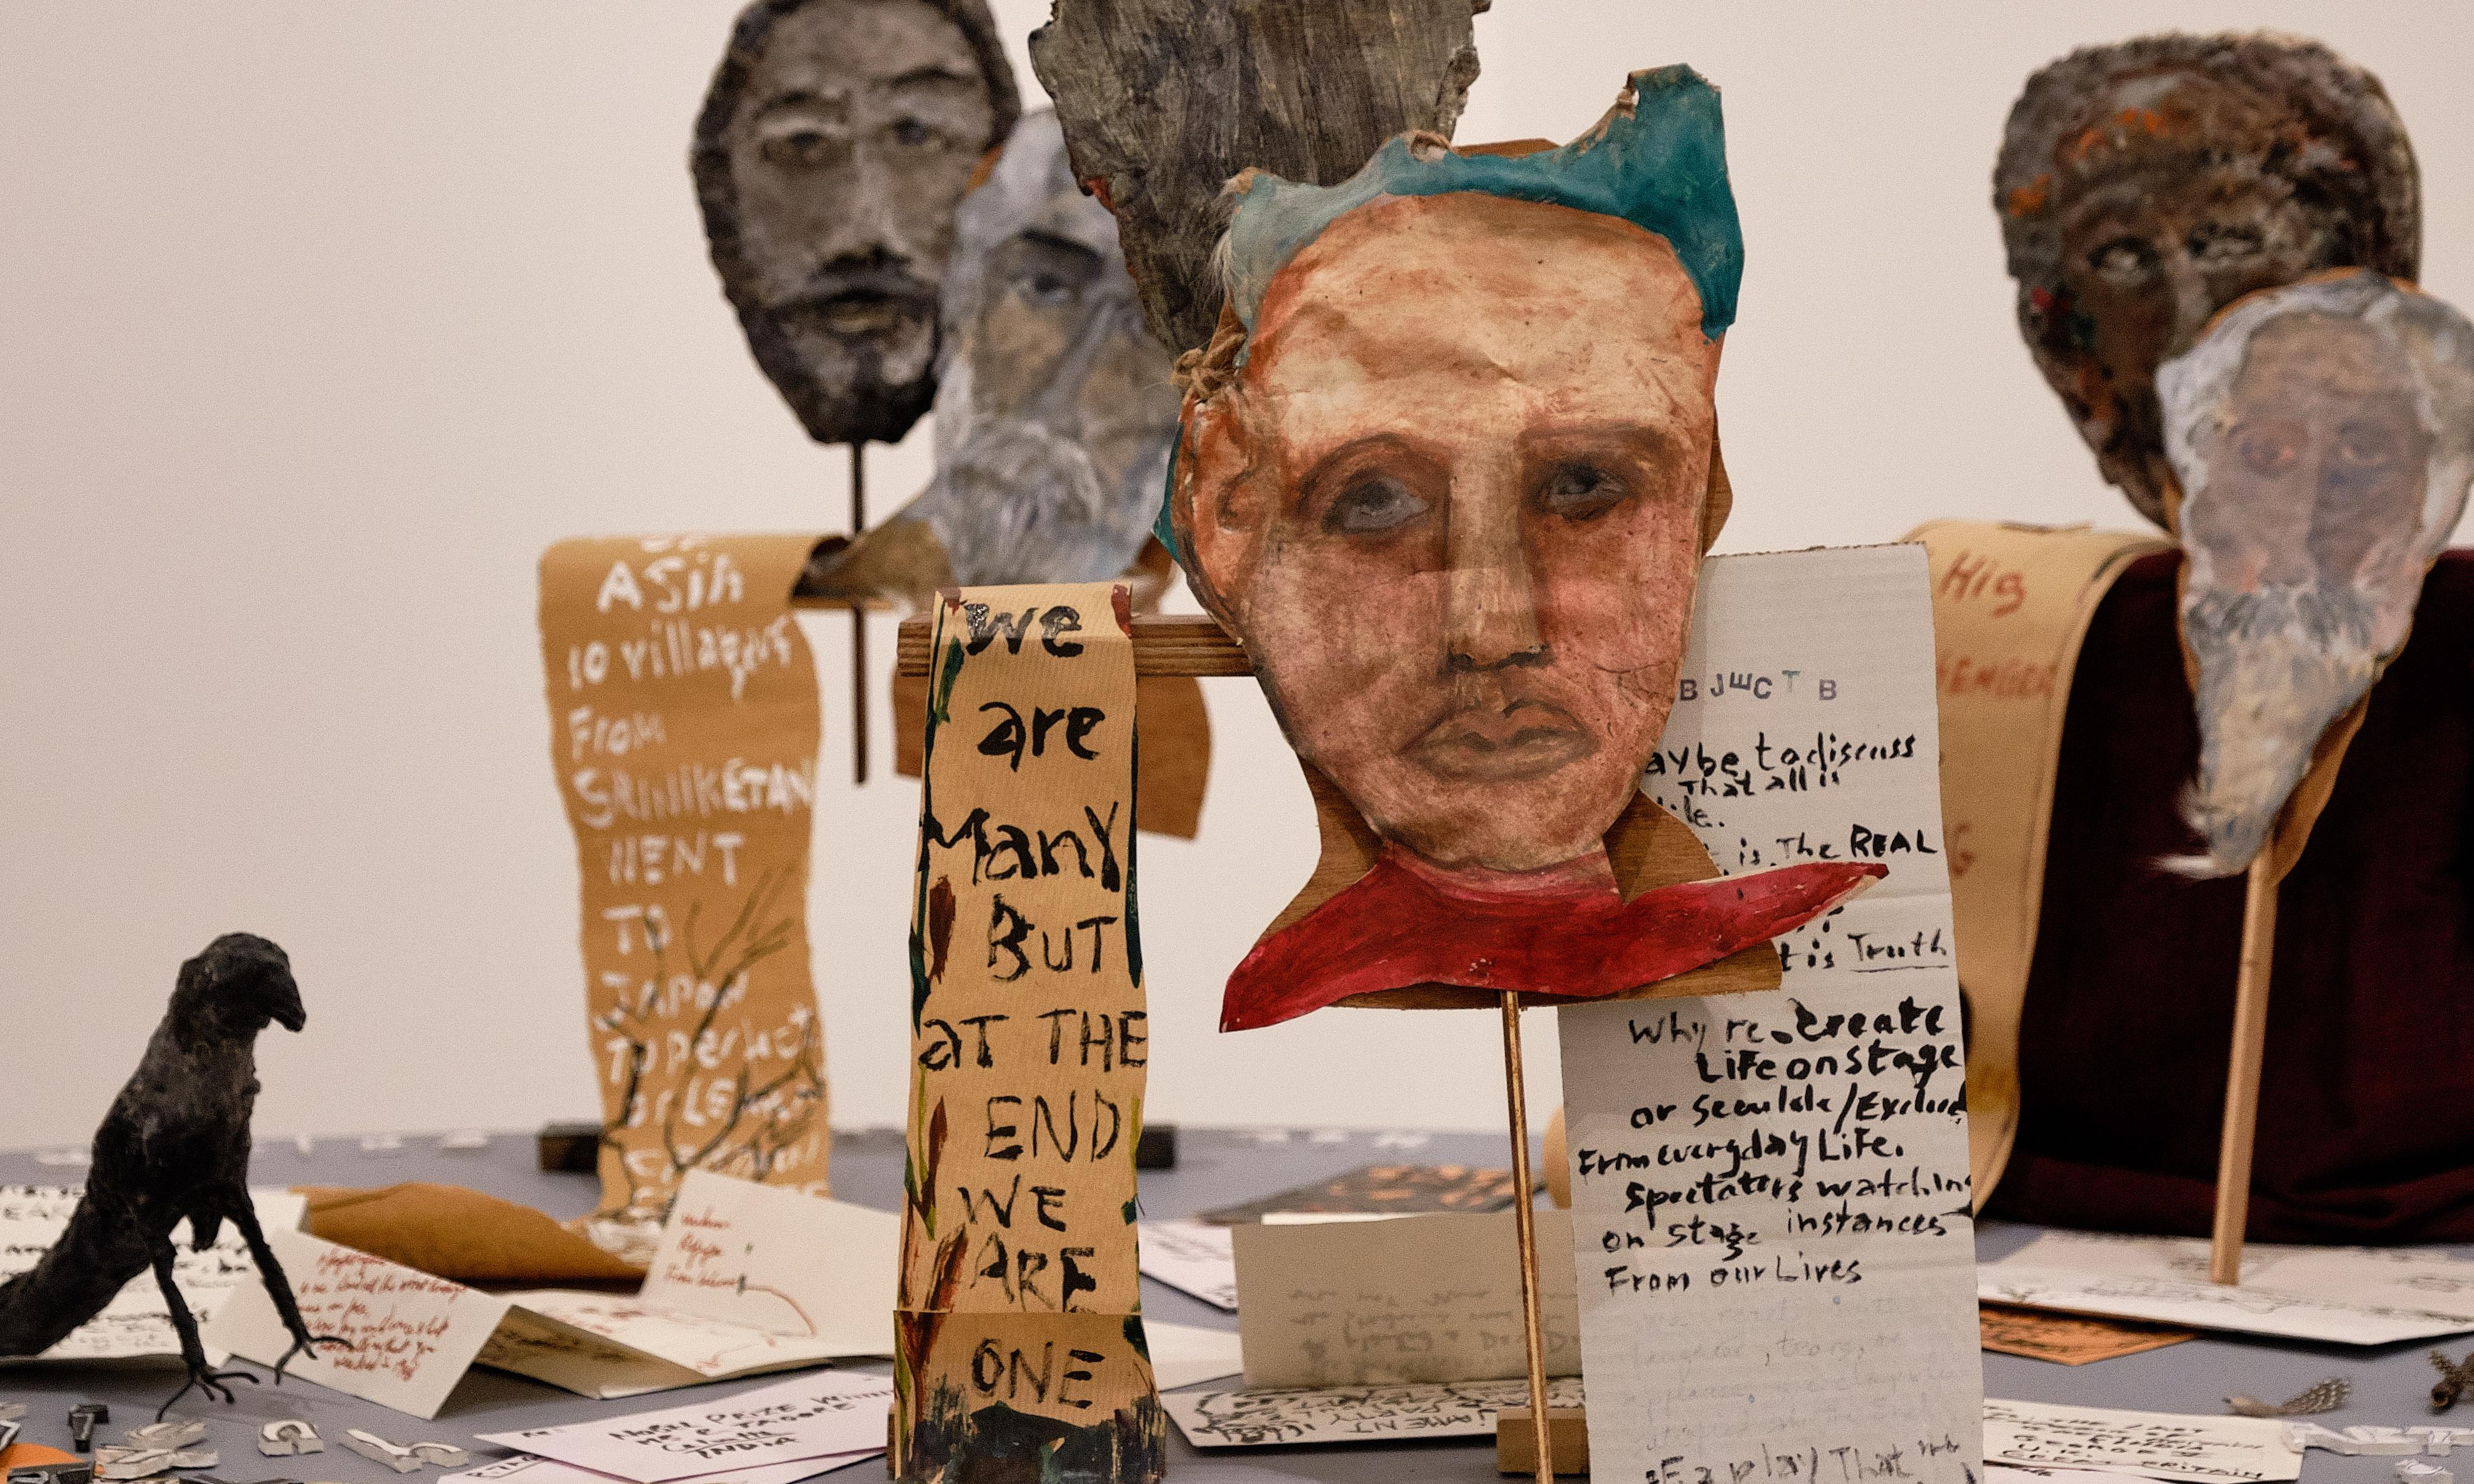 Marxist papier-mache and Mary Quant's revolution – the week in art